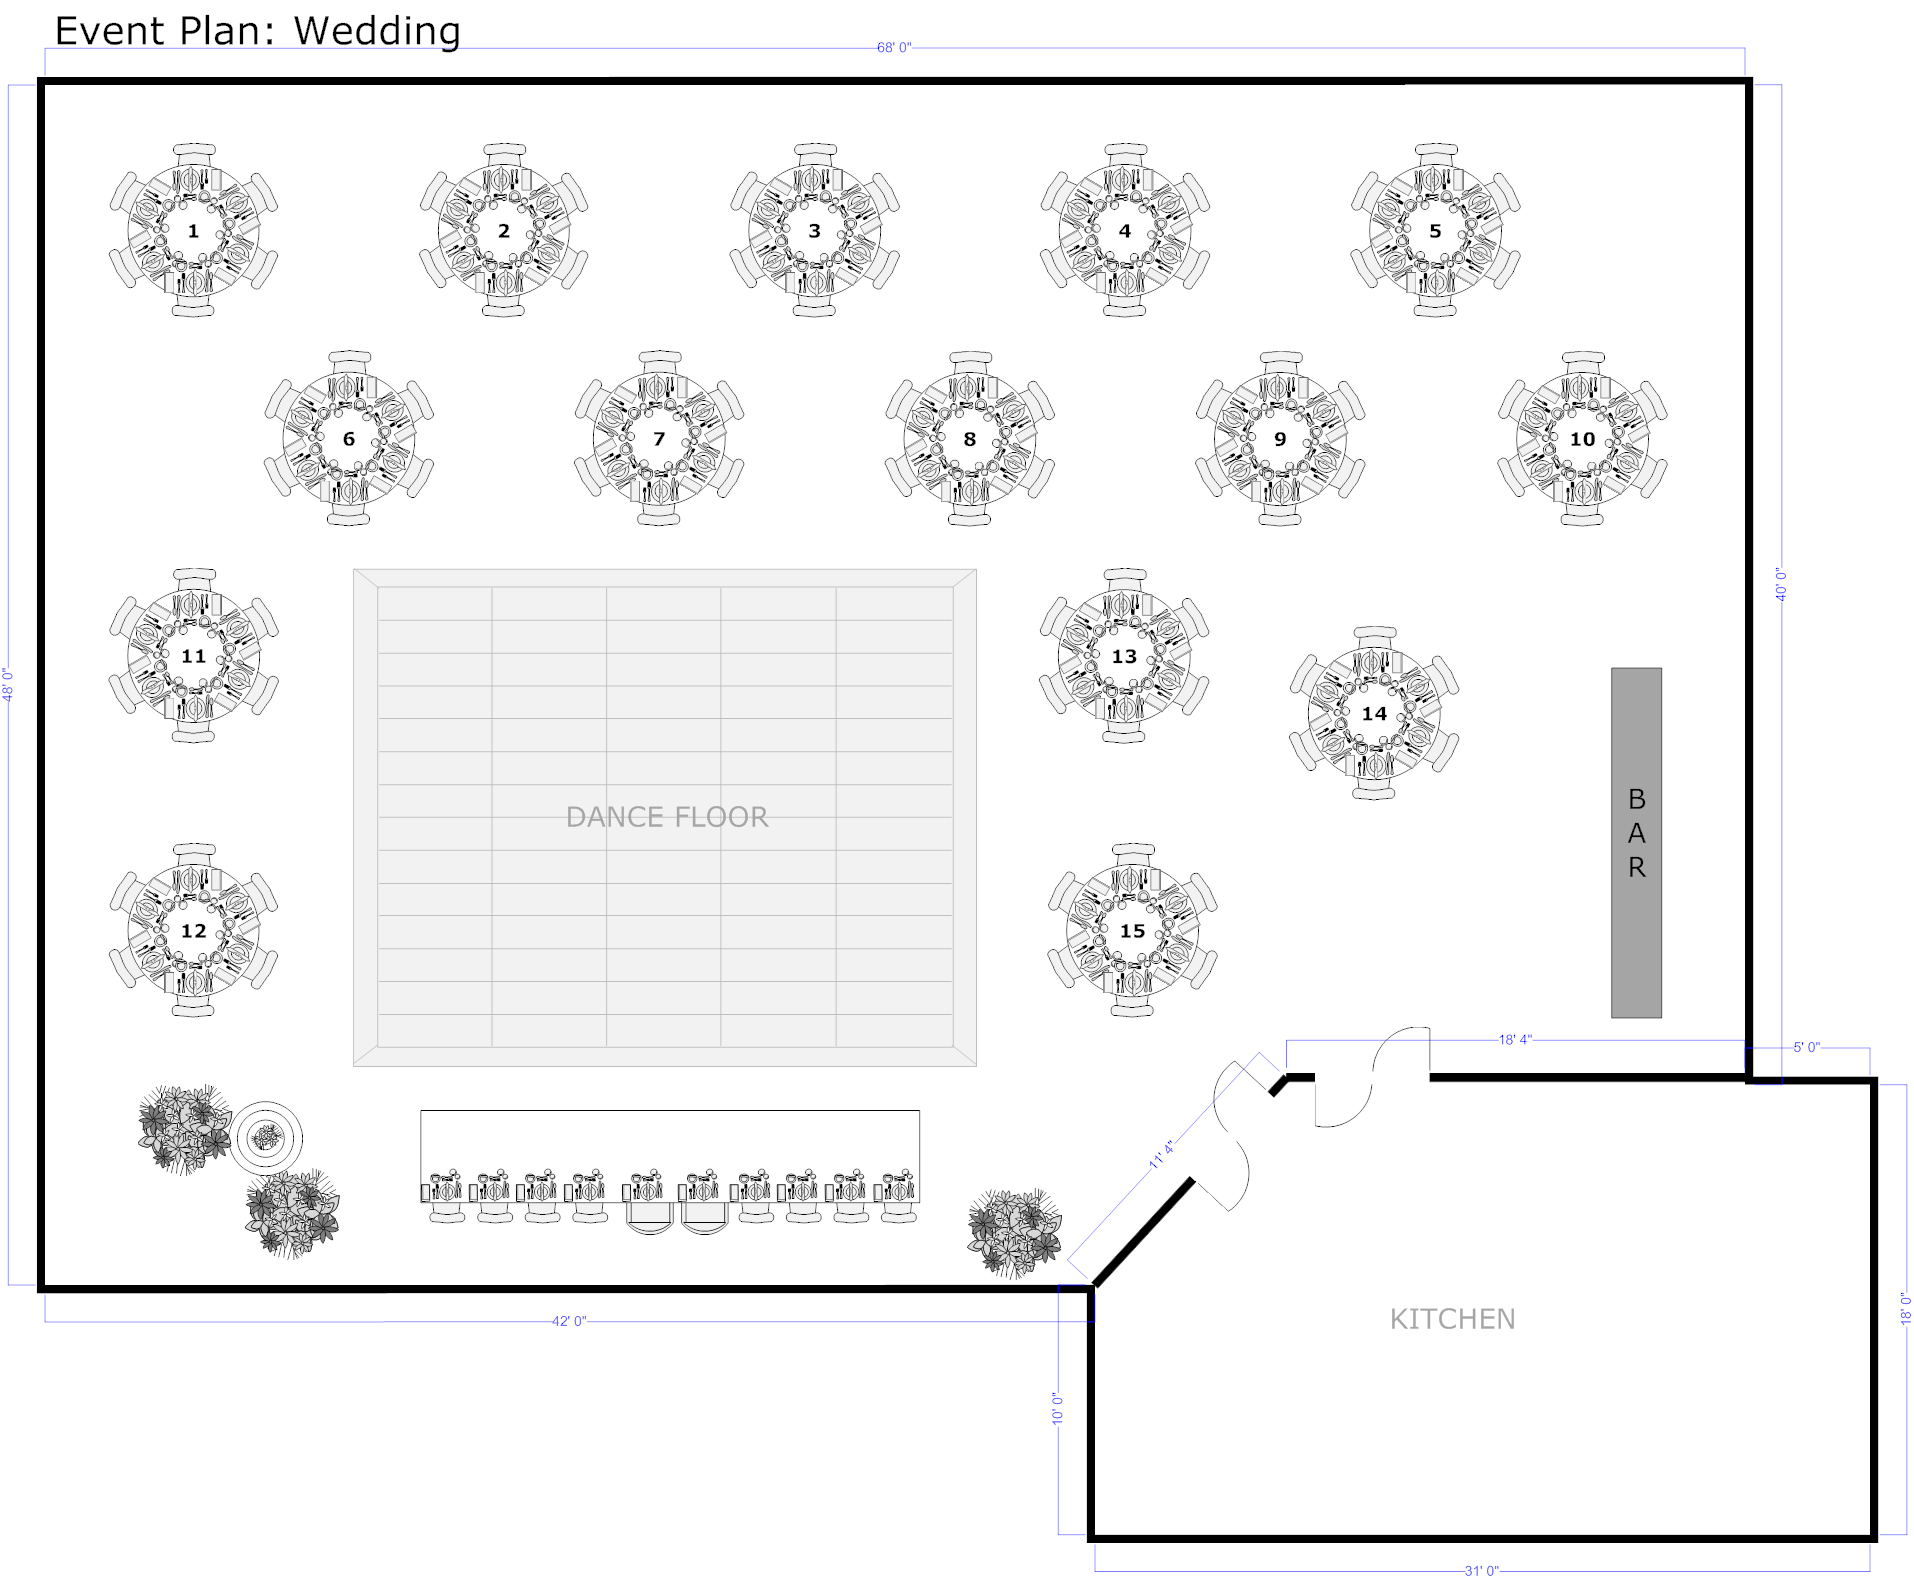 Event planning software try it free for easy layout for Wedding floor plan template